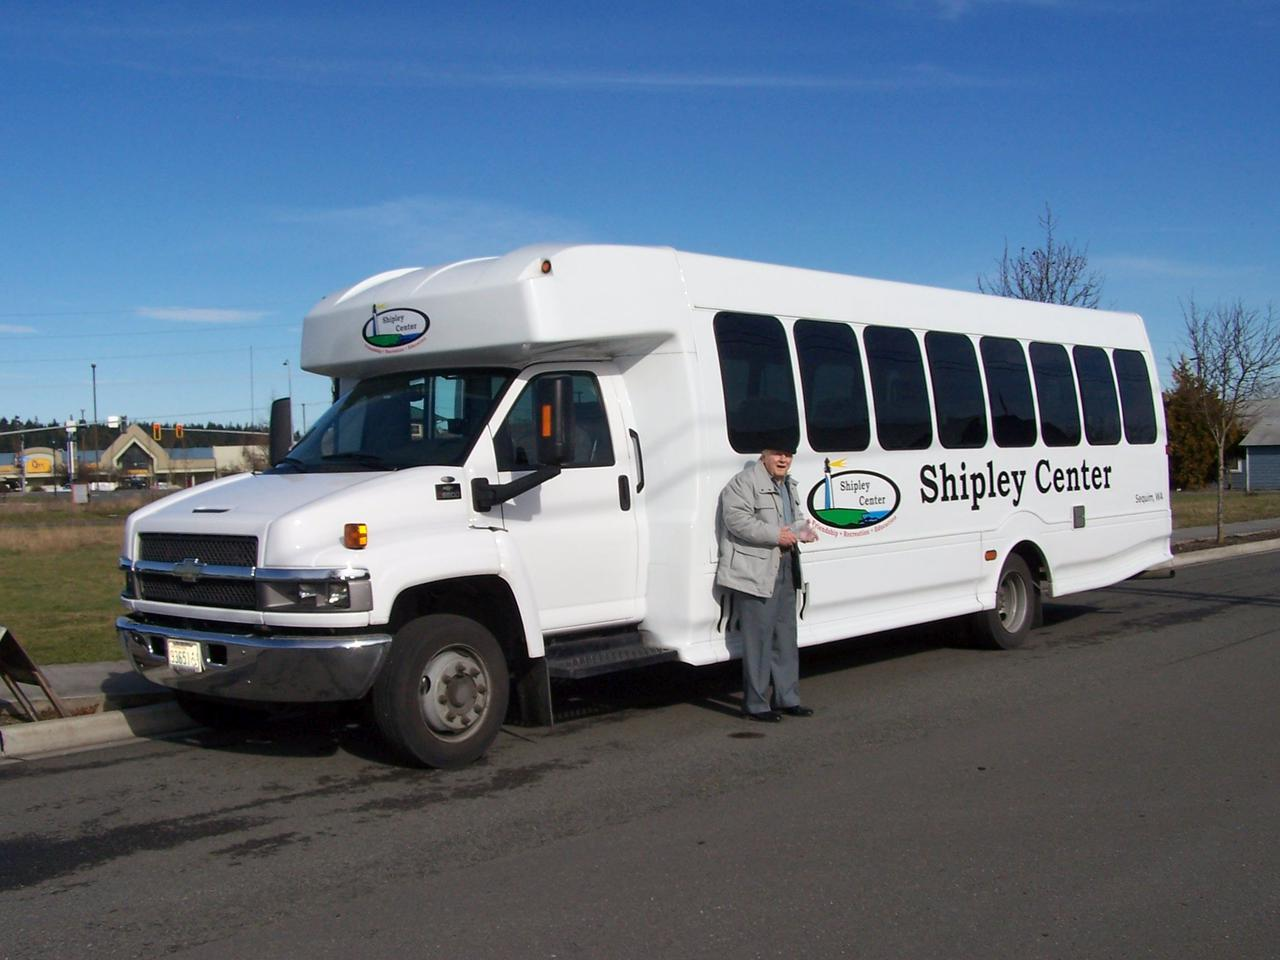 c0641b0a-4fbf-11eb-9535-0242ac110002-bus_shipley_center_with_leo_2013.jpg